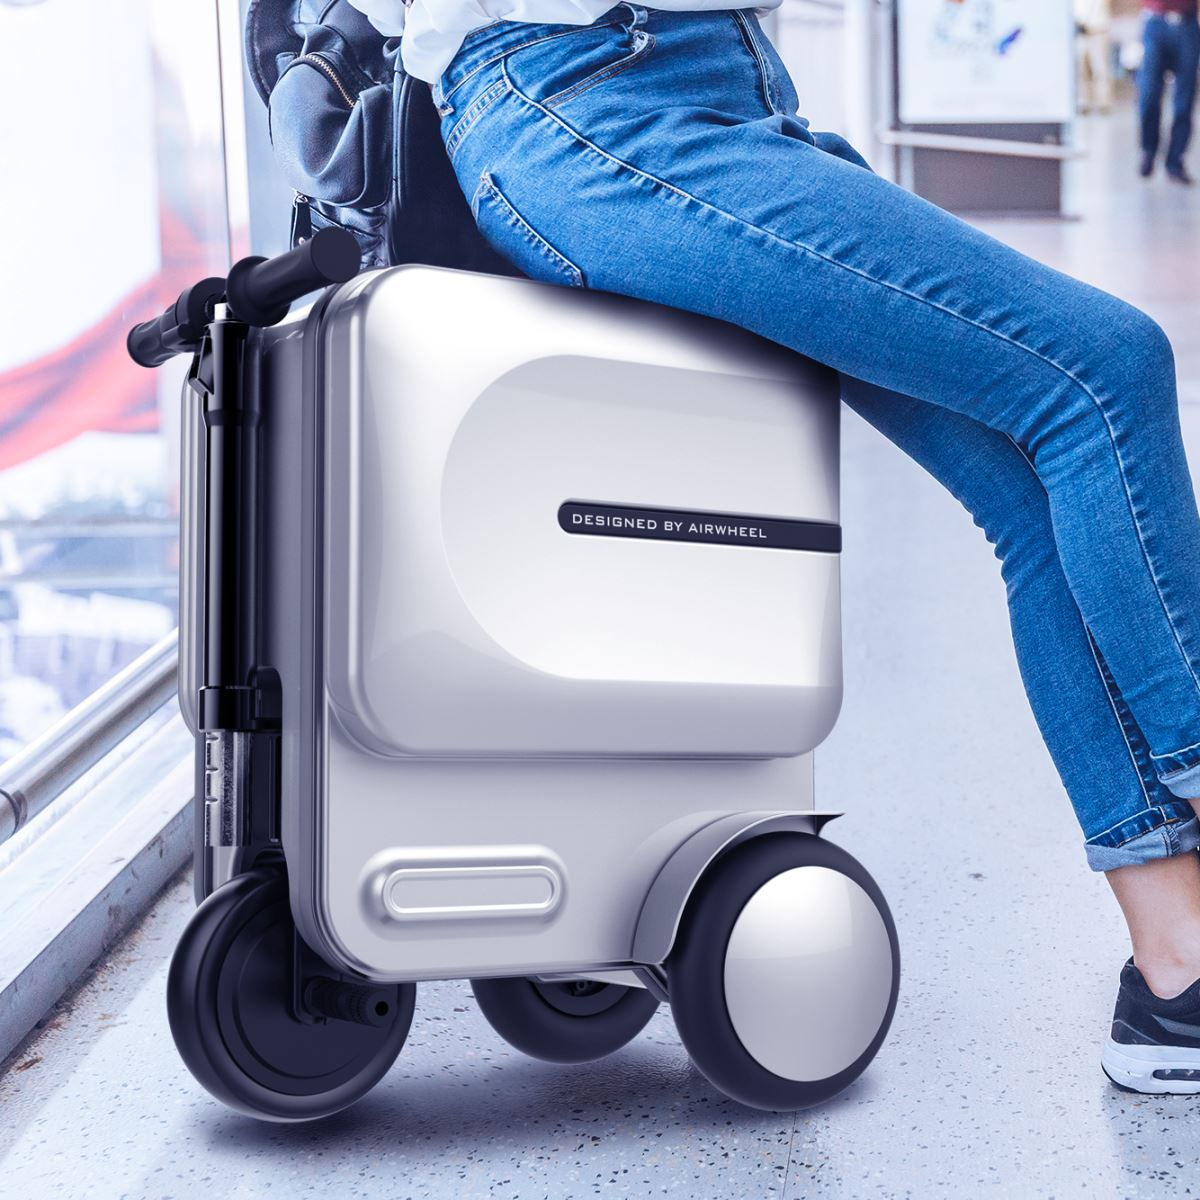 airwheel se3 rideable carry on luggage(2).